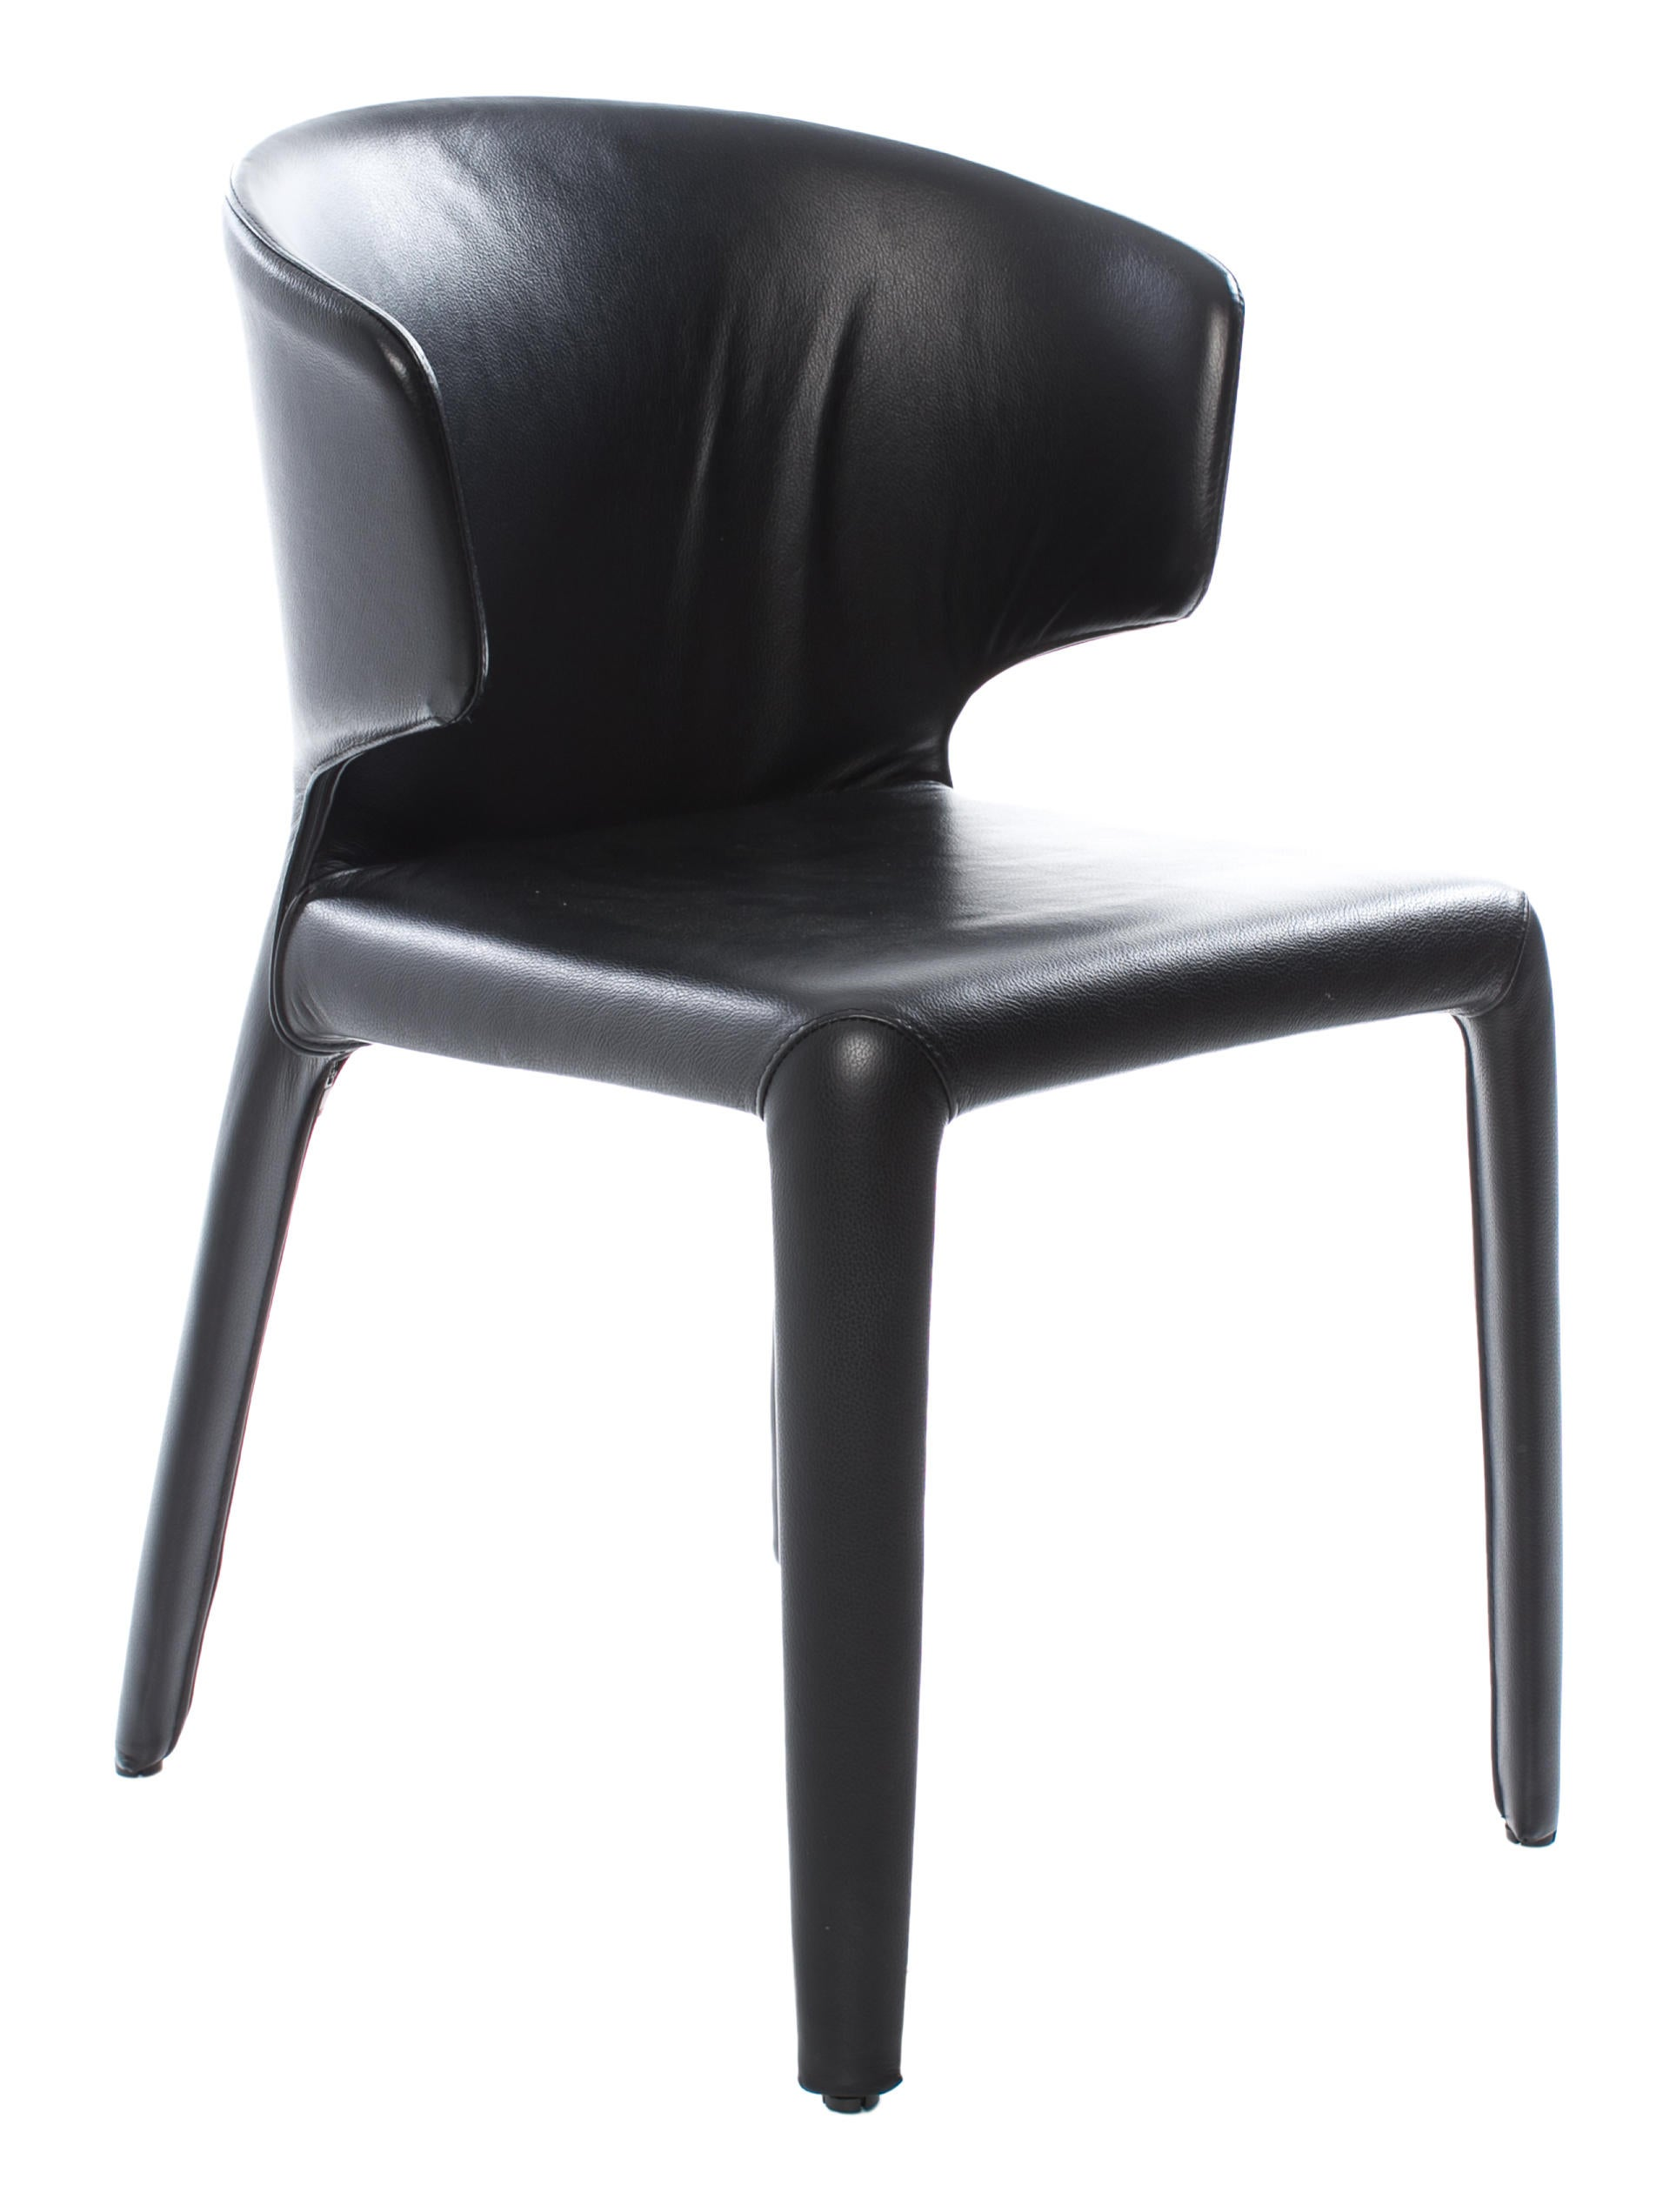 Cassina Quot Hola 367 Quot Chair Furniture Csi20007 The Realreal